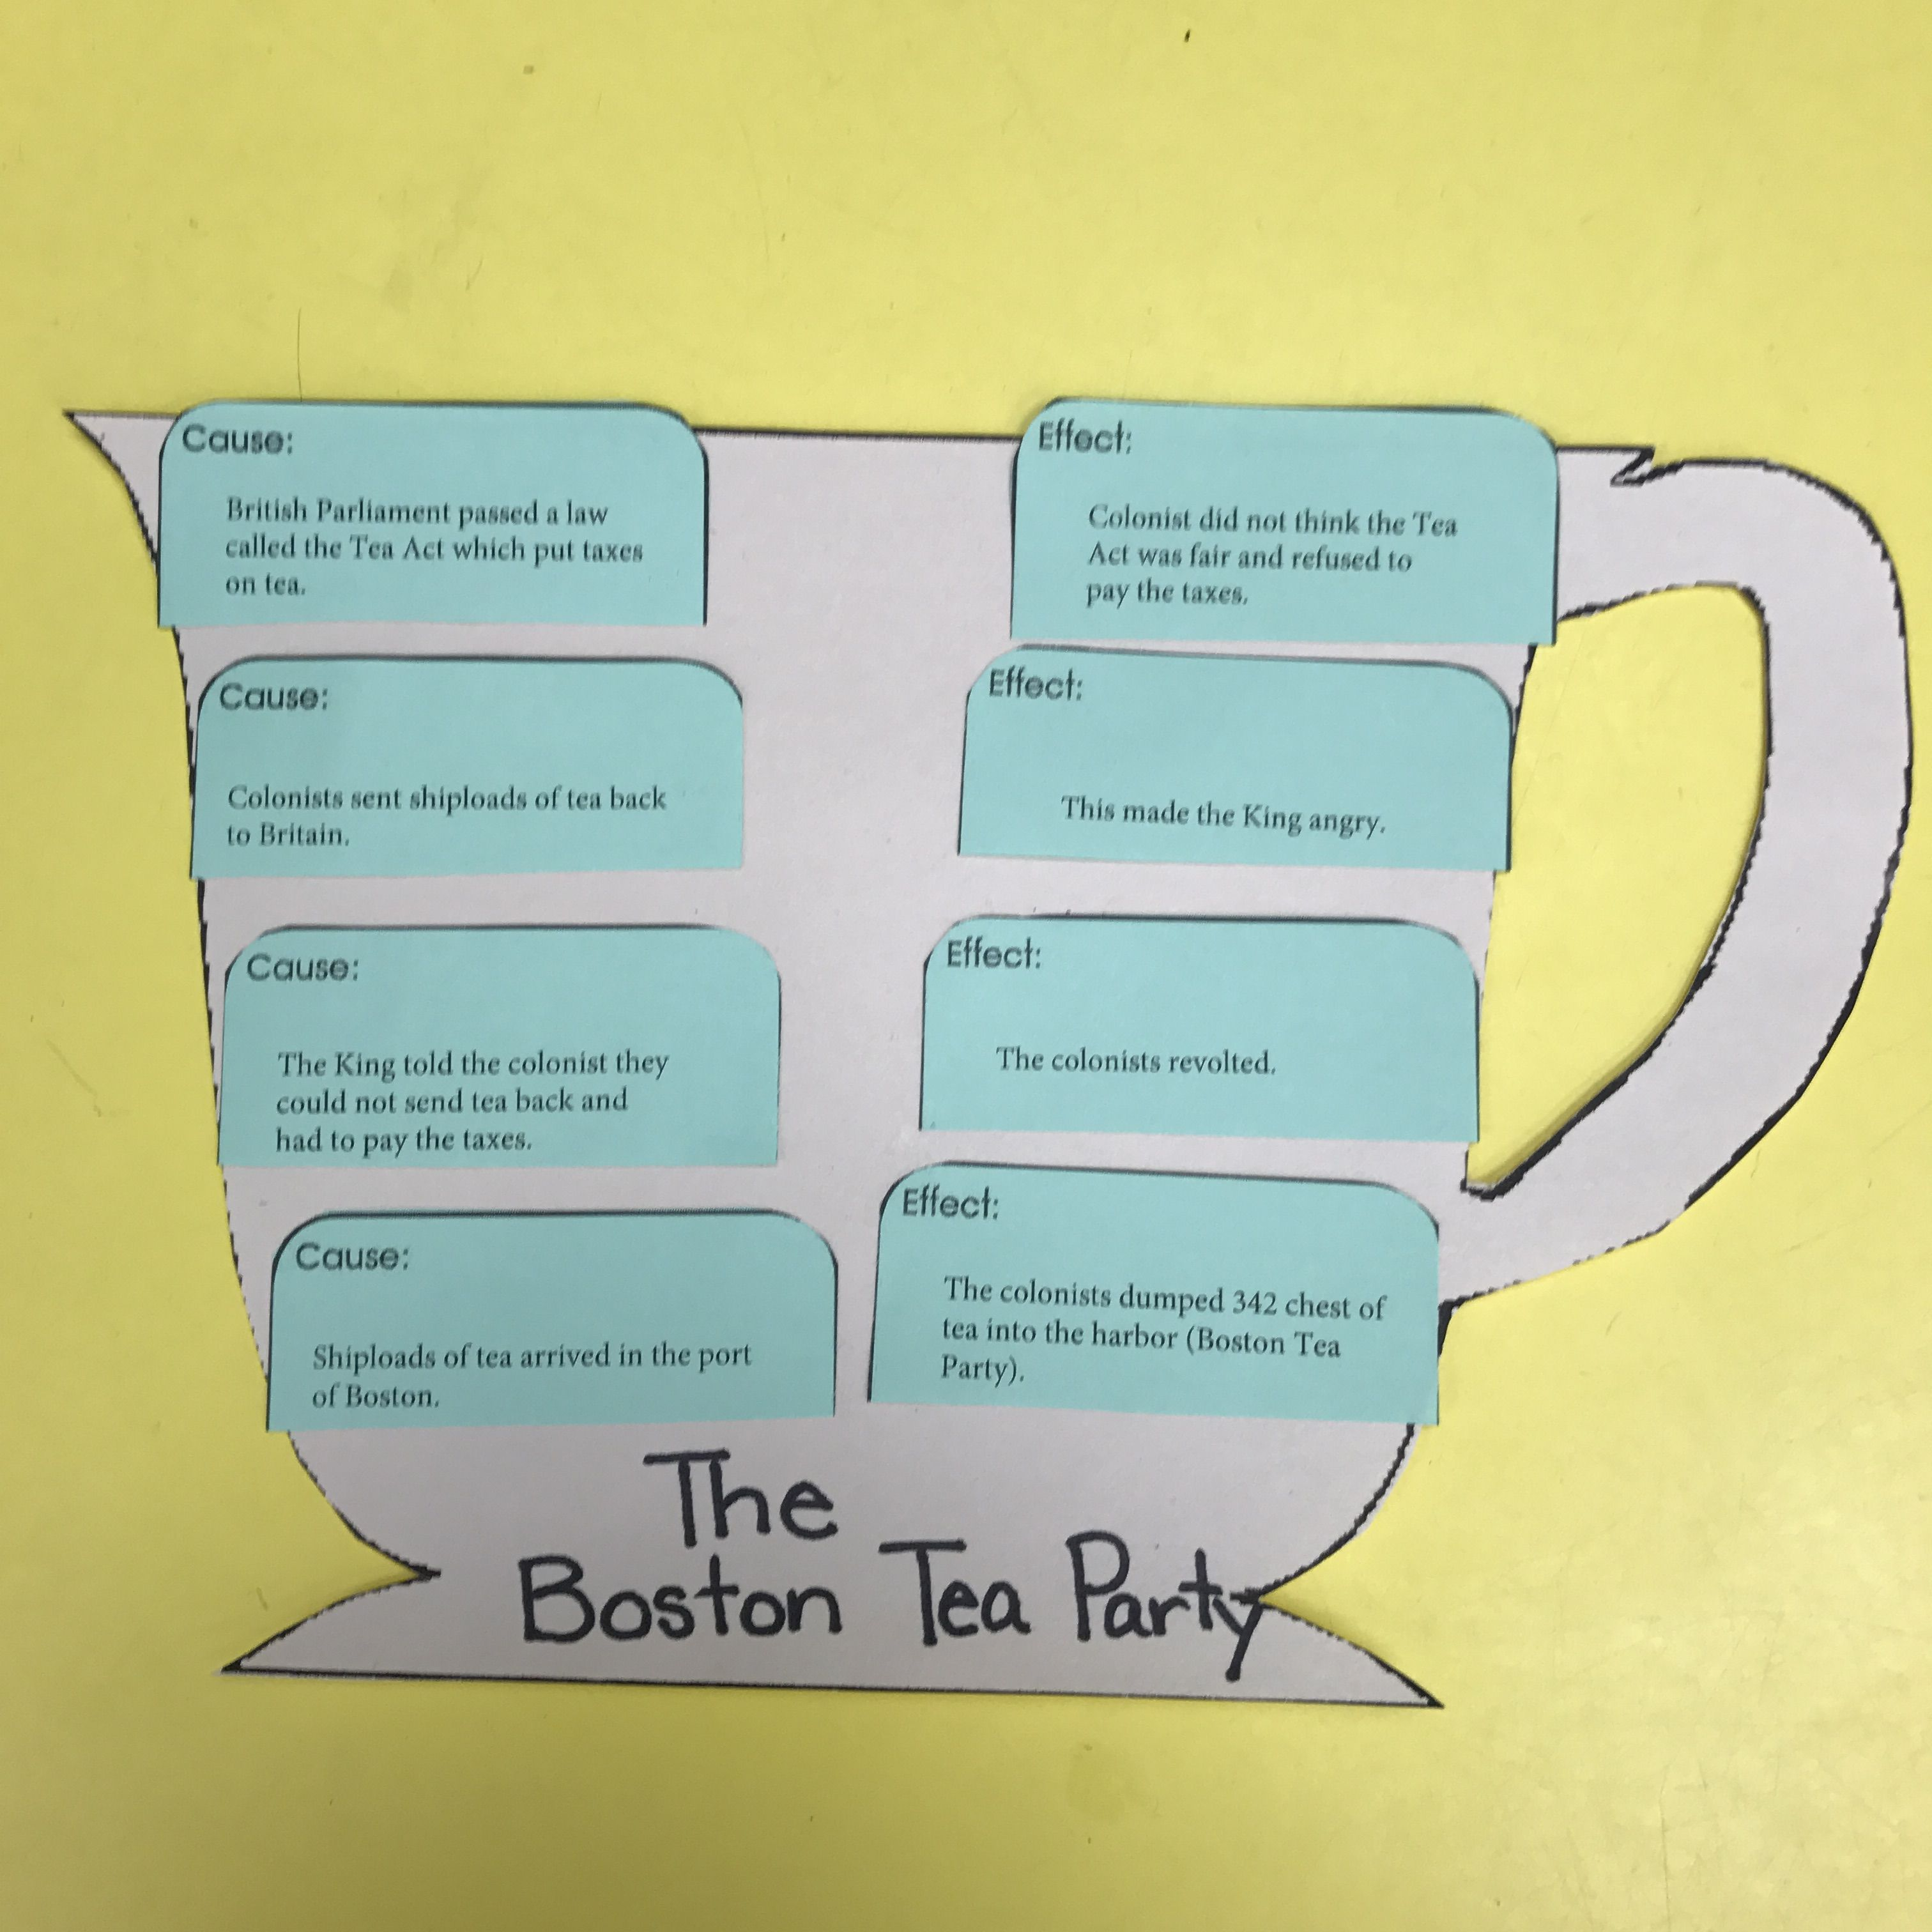 hight resolution of A cause and effect teacup graphic organizer of the Boston Tea Party.    Graphic organizers